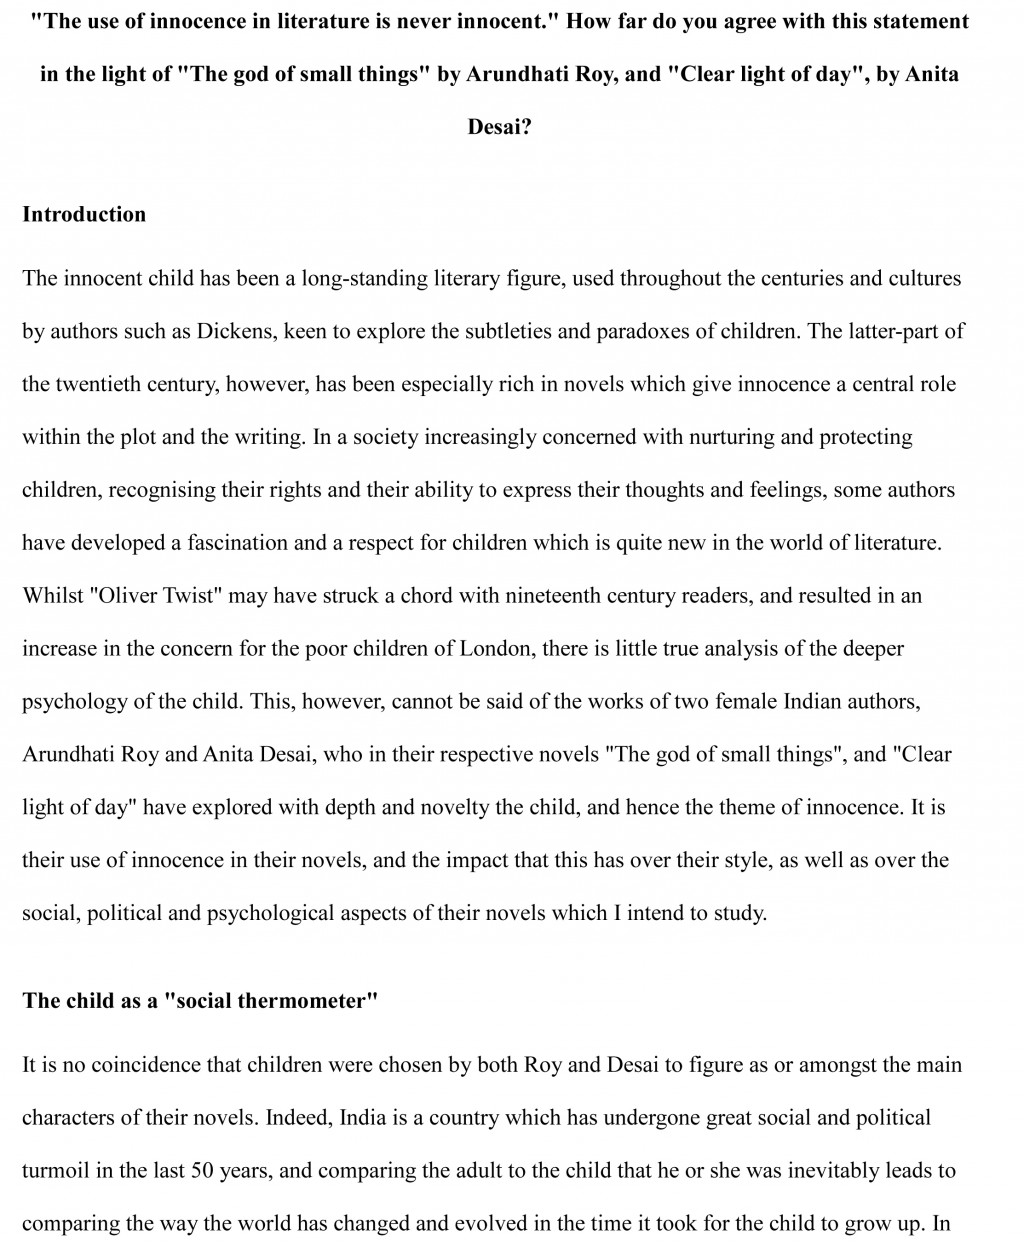 003 Alevel Course Work Sample Essay Example Stirring Literary 4th Grade Analysis Large